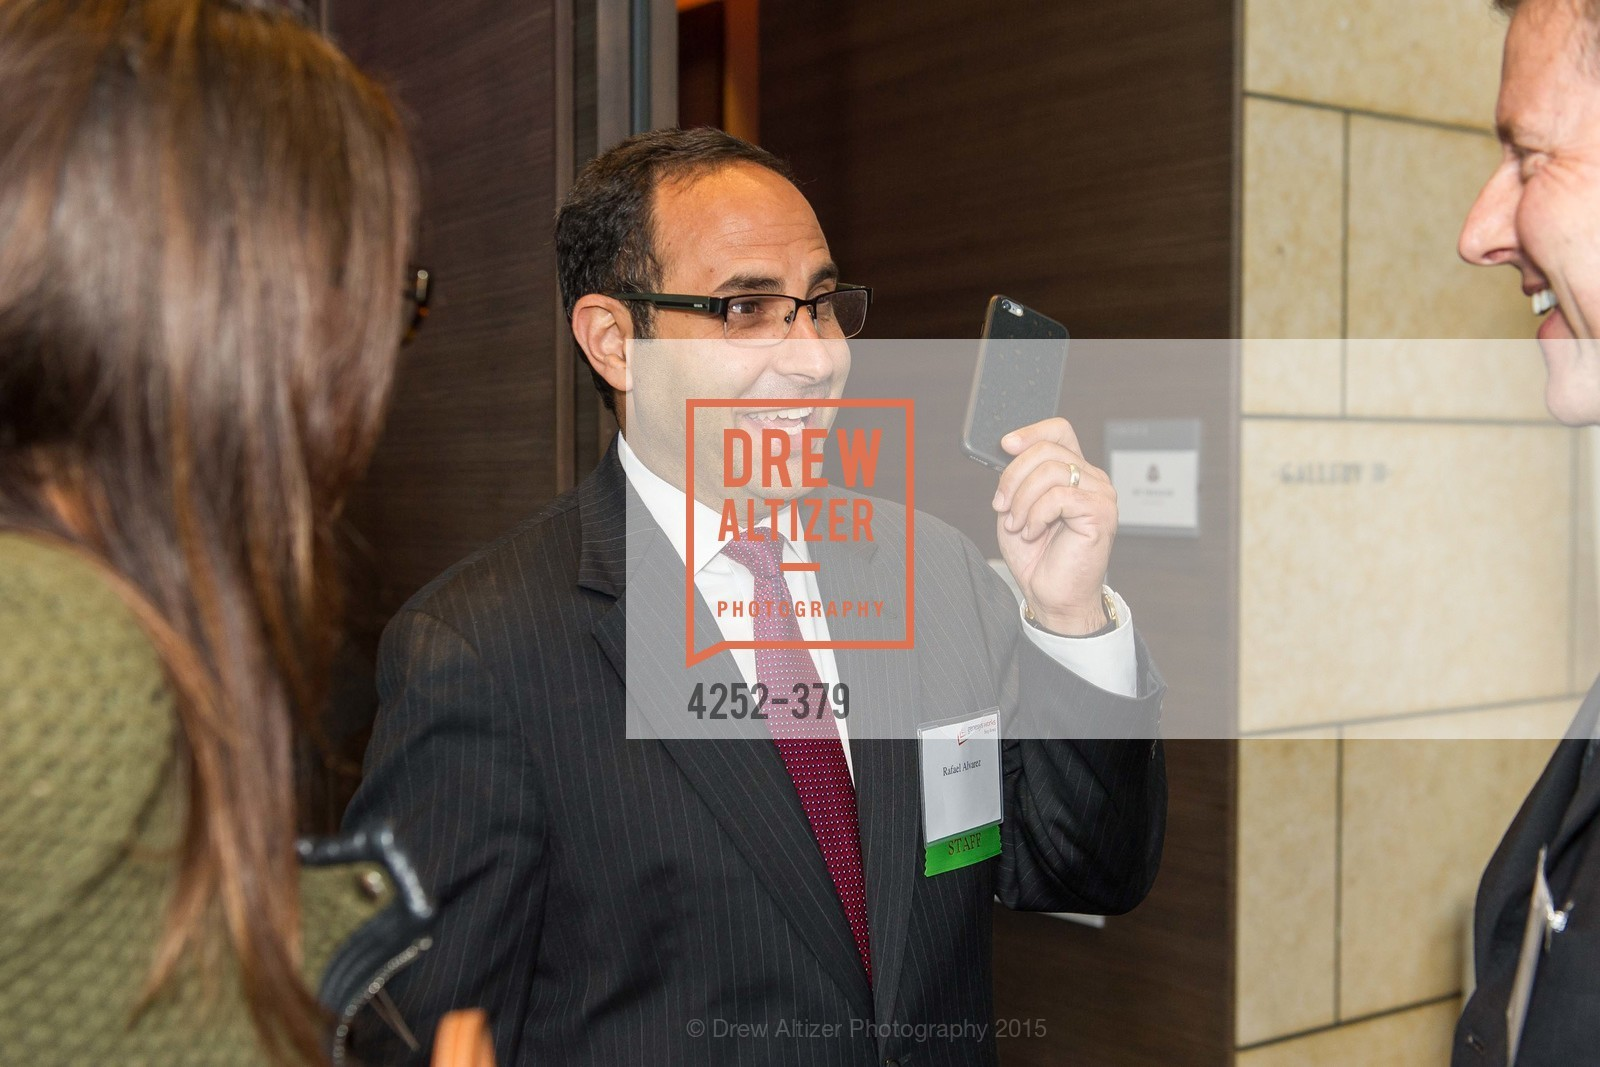 Rafel Alvarez, Genesys Works Bay Area Presents BREAKING THROUGH, St. Regis Hotel. 125 3rd St, October 14th, 2015,Drew Altizer, Drew Altizer Photography, full-service event agency, private events, San Francisco photographer, photographer California